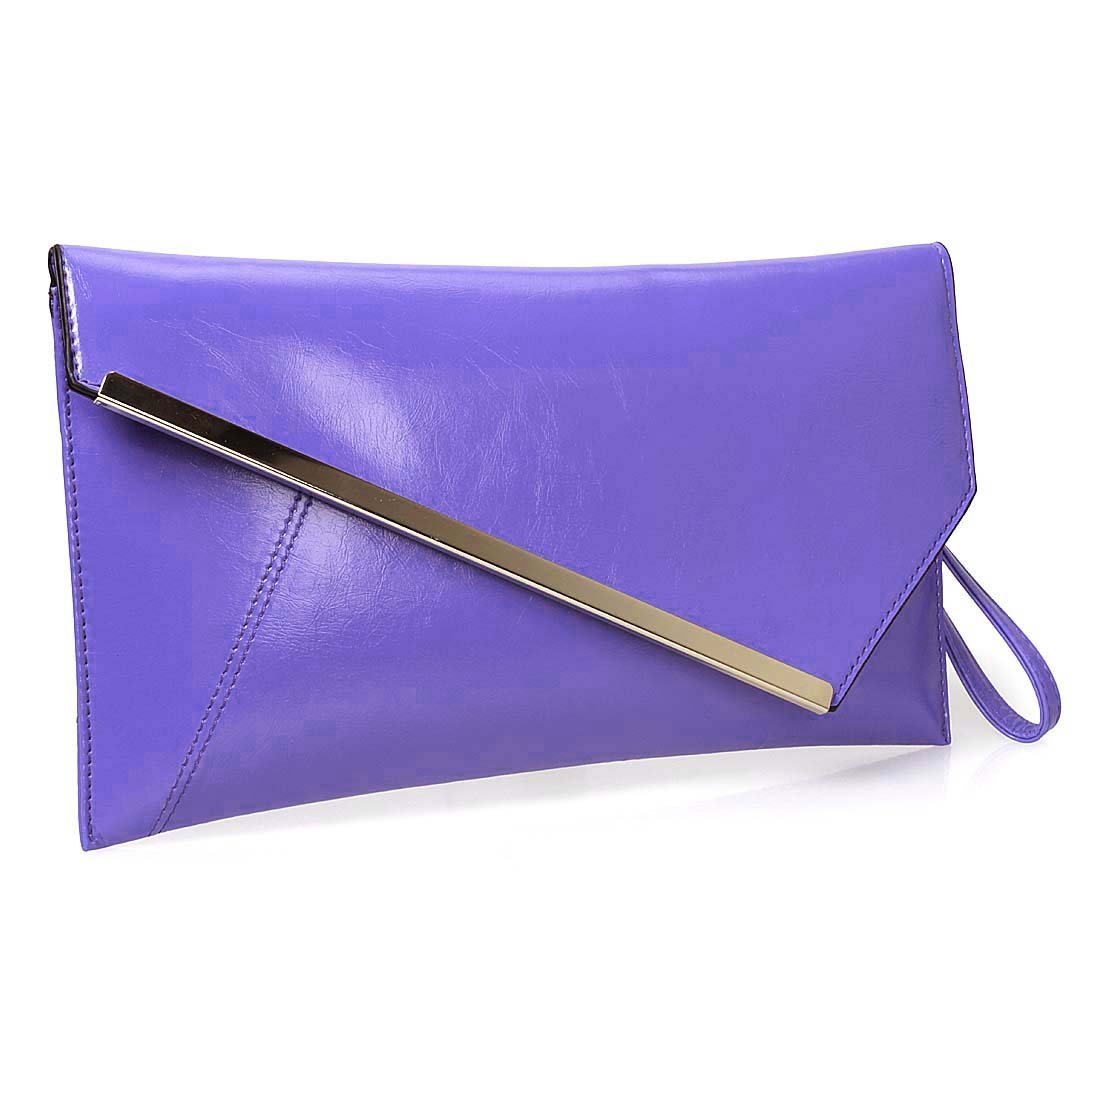 BMC Fashionably Chic Cool Purple Faux Leather Gold Metal Accent Envelope Style Statement Clutch